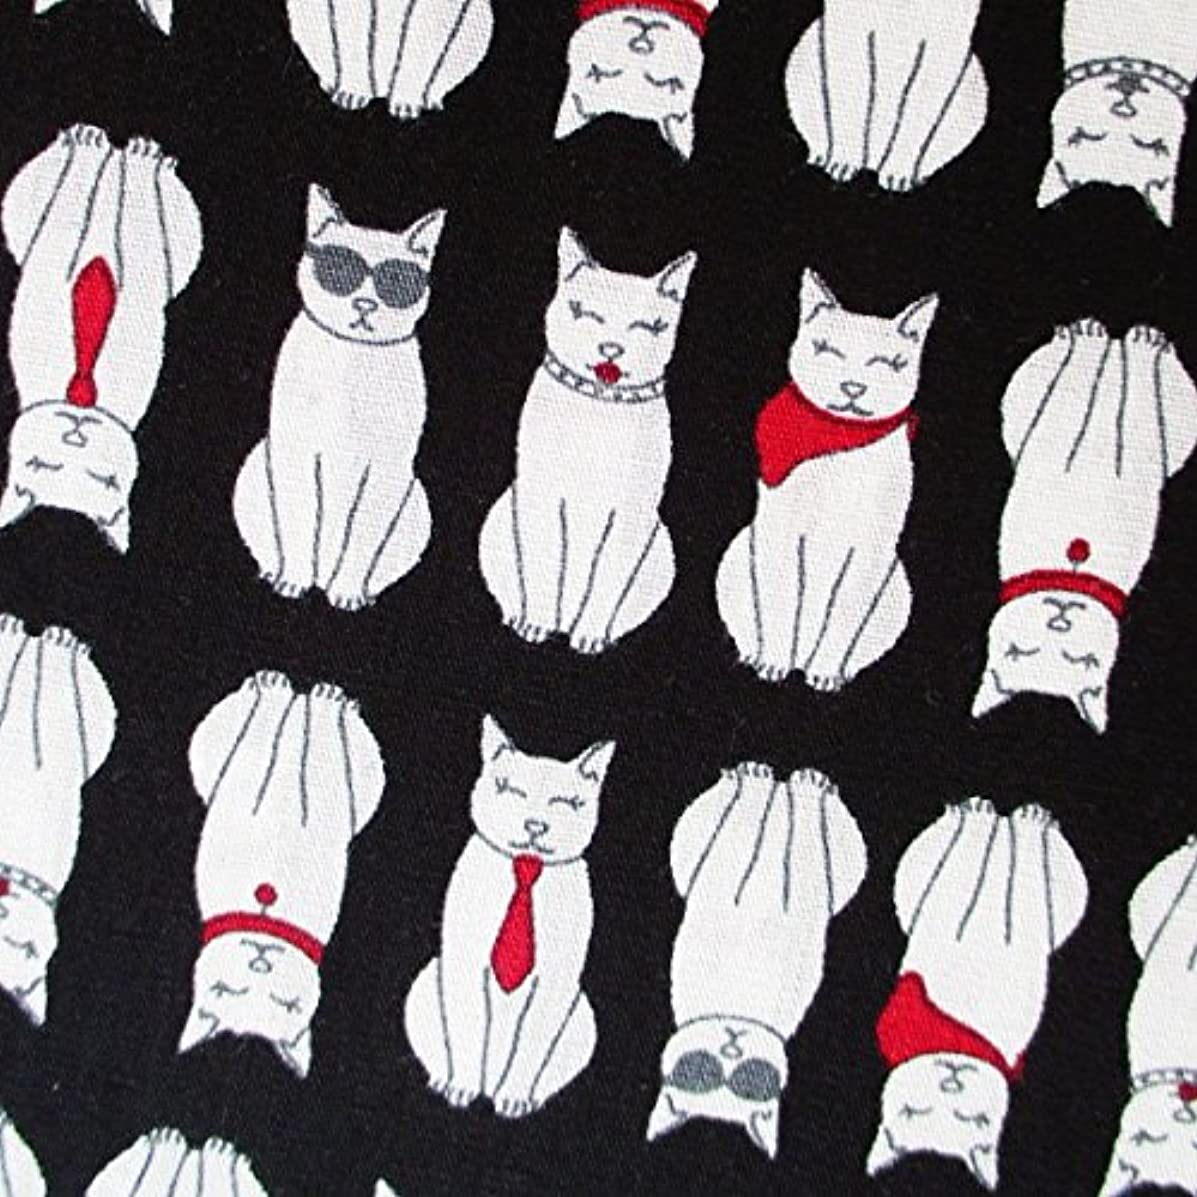 Cat Fabric Japanese Fabric by The Yard - Cats on Black 36 by 36-Inch Wide (1 Yard) (CT670)